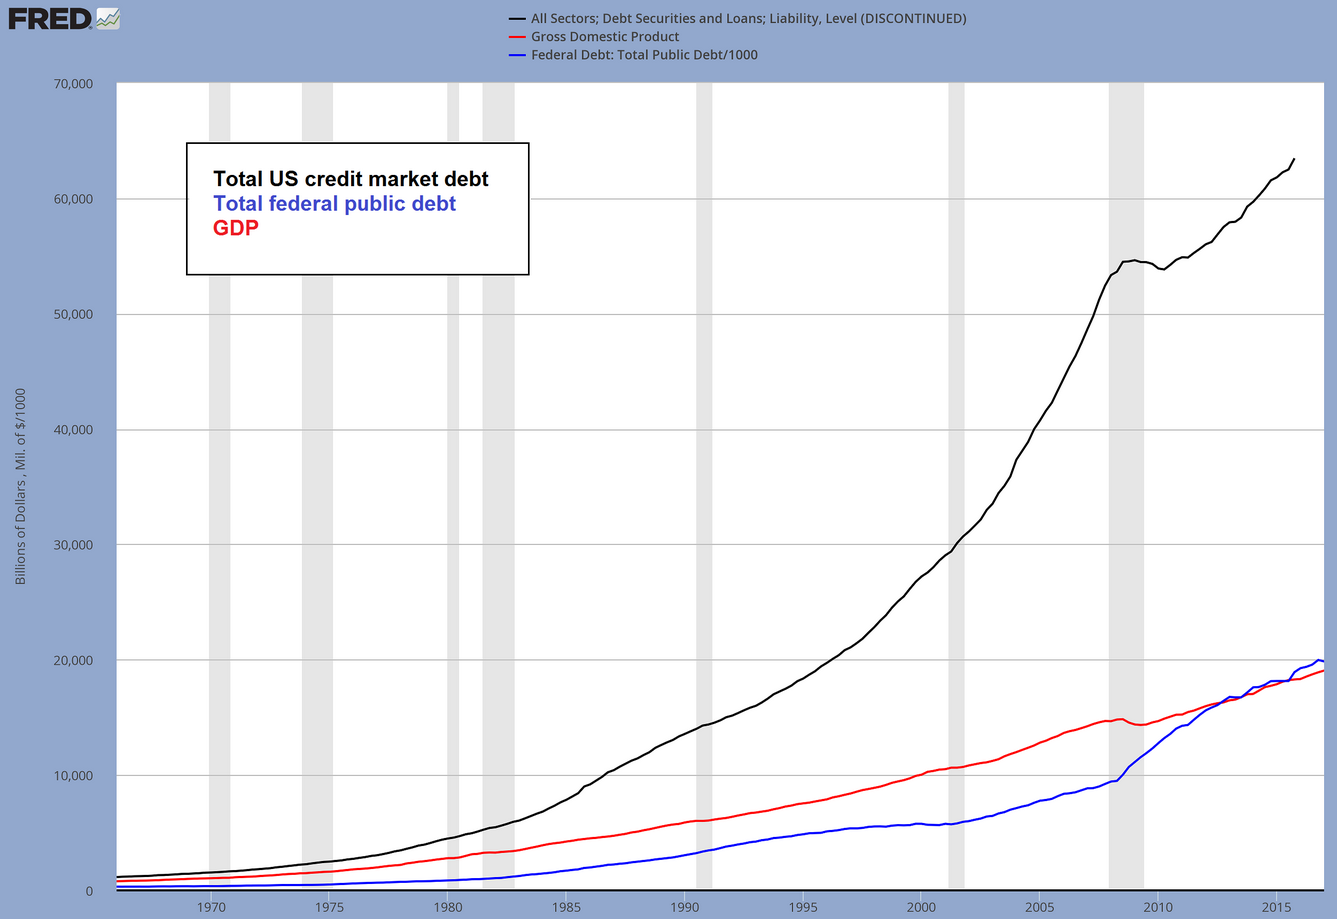 Debt Securities and Loans, GDP, Federal Debt compared 1970-2017